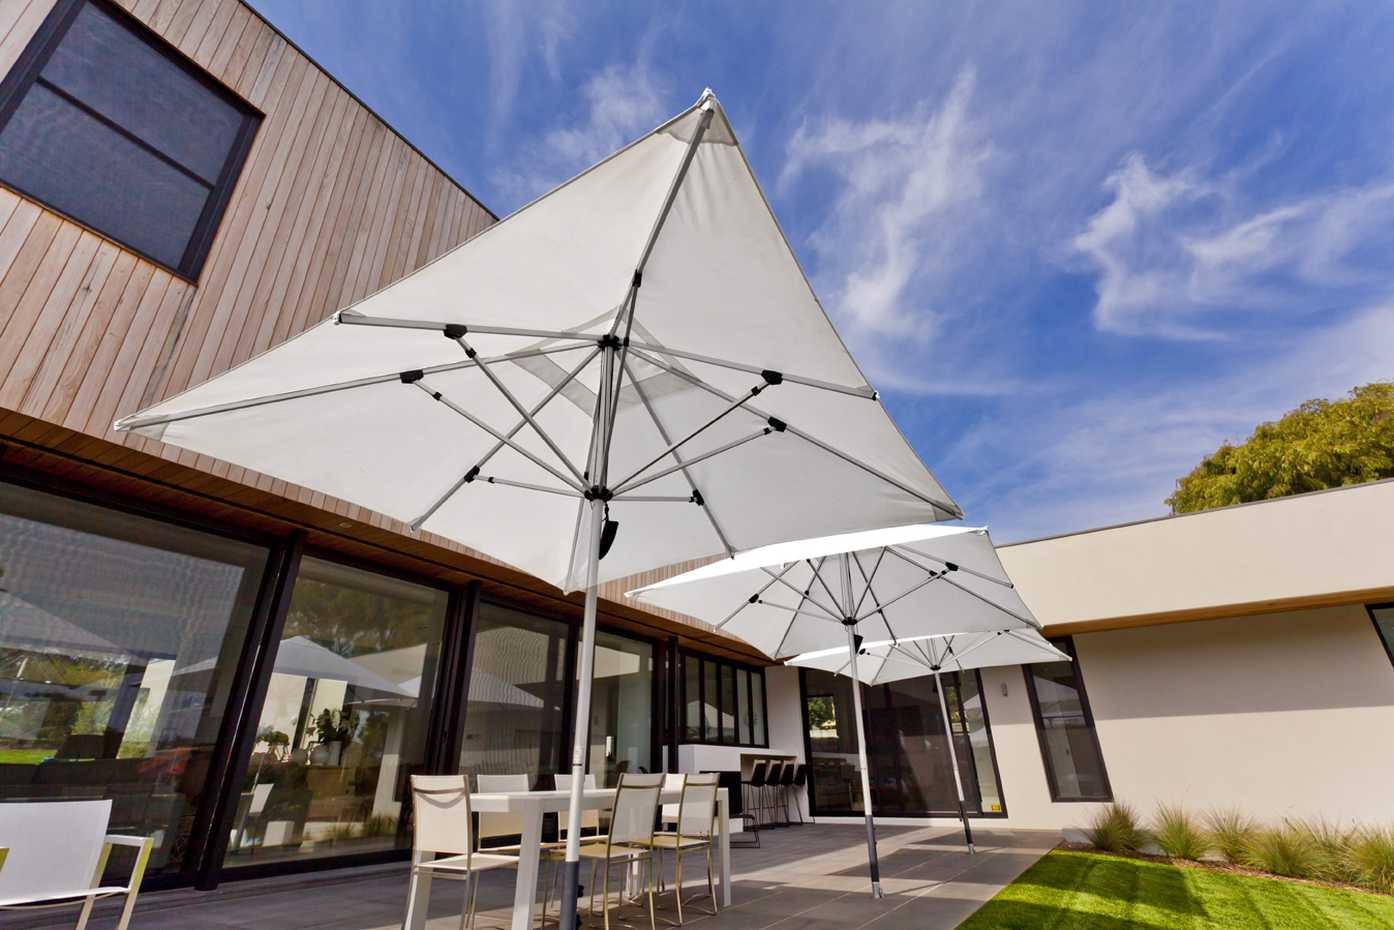 Cafe Series by Instant Shade Umbrellas product image 4